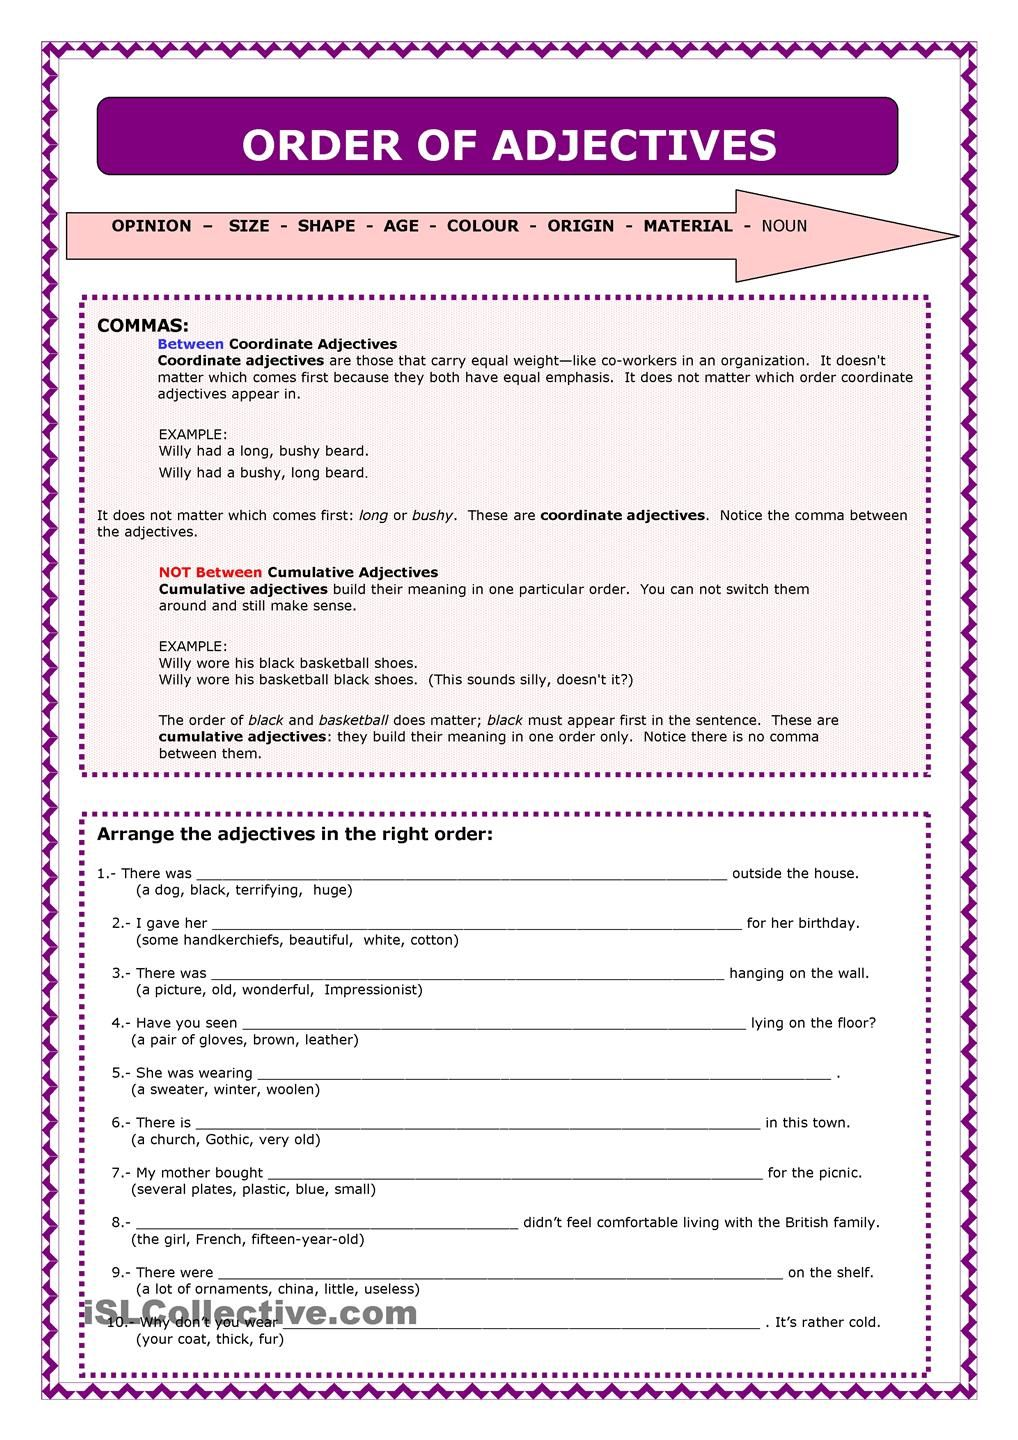 worksheet Order Of Adjectives Worksheet 1000 images about certificates on pinterest free certificate templates english and invitations